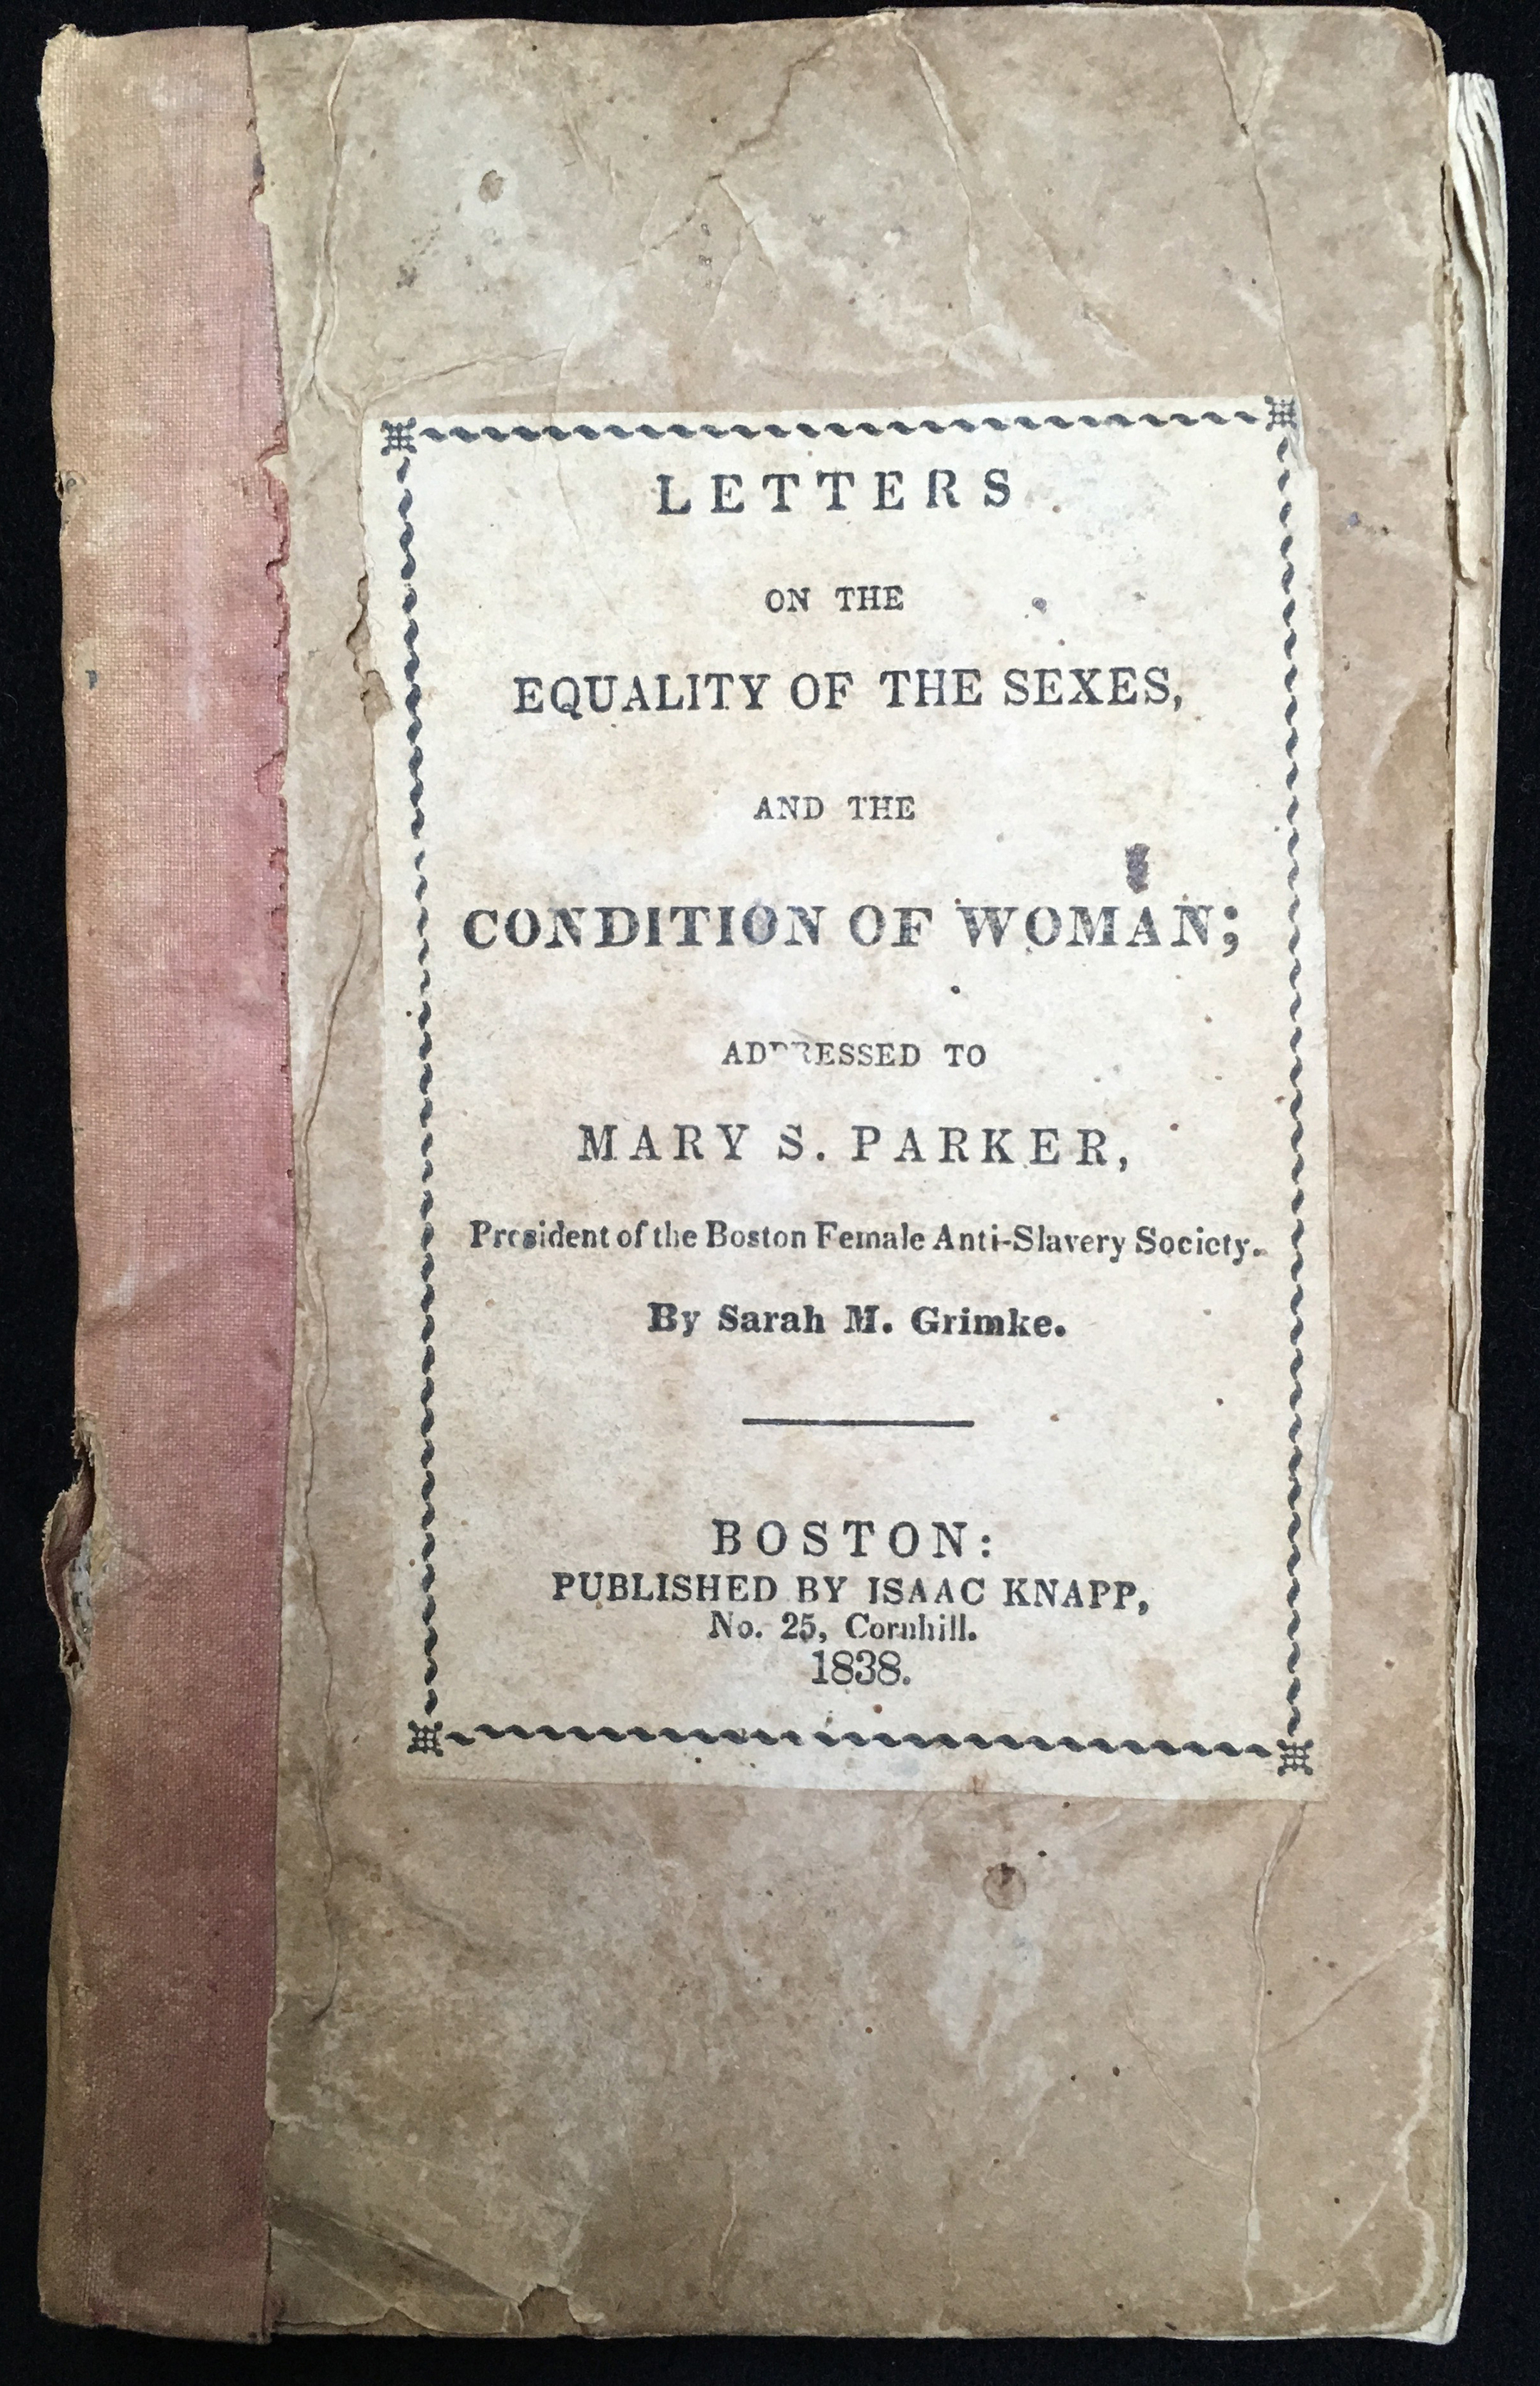 Letters on the Equality of the Sexes, and the Condition of Women. Addressed to Mary S. Parker